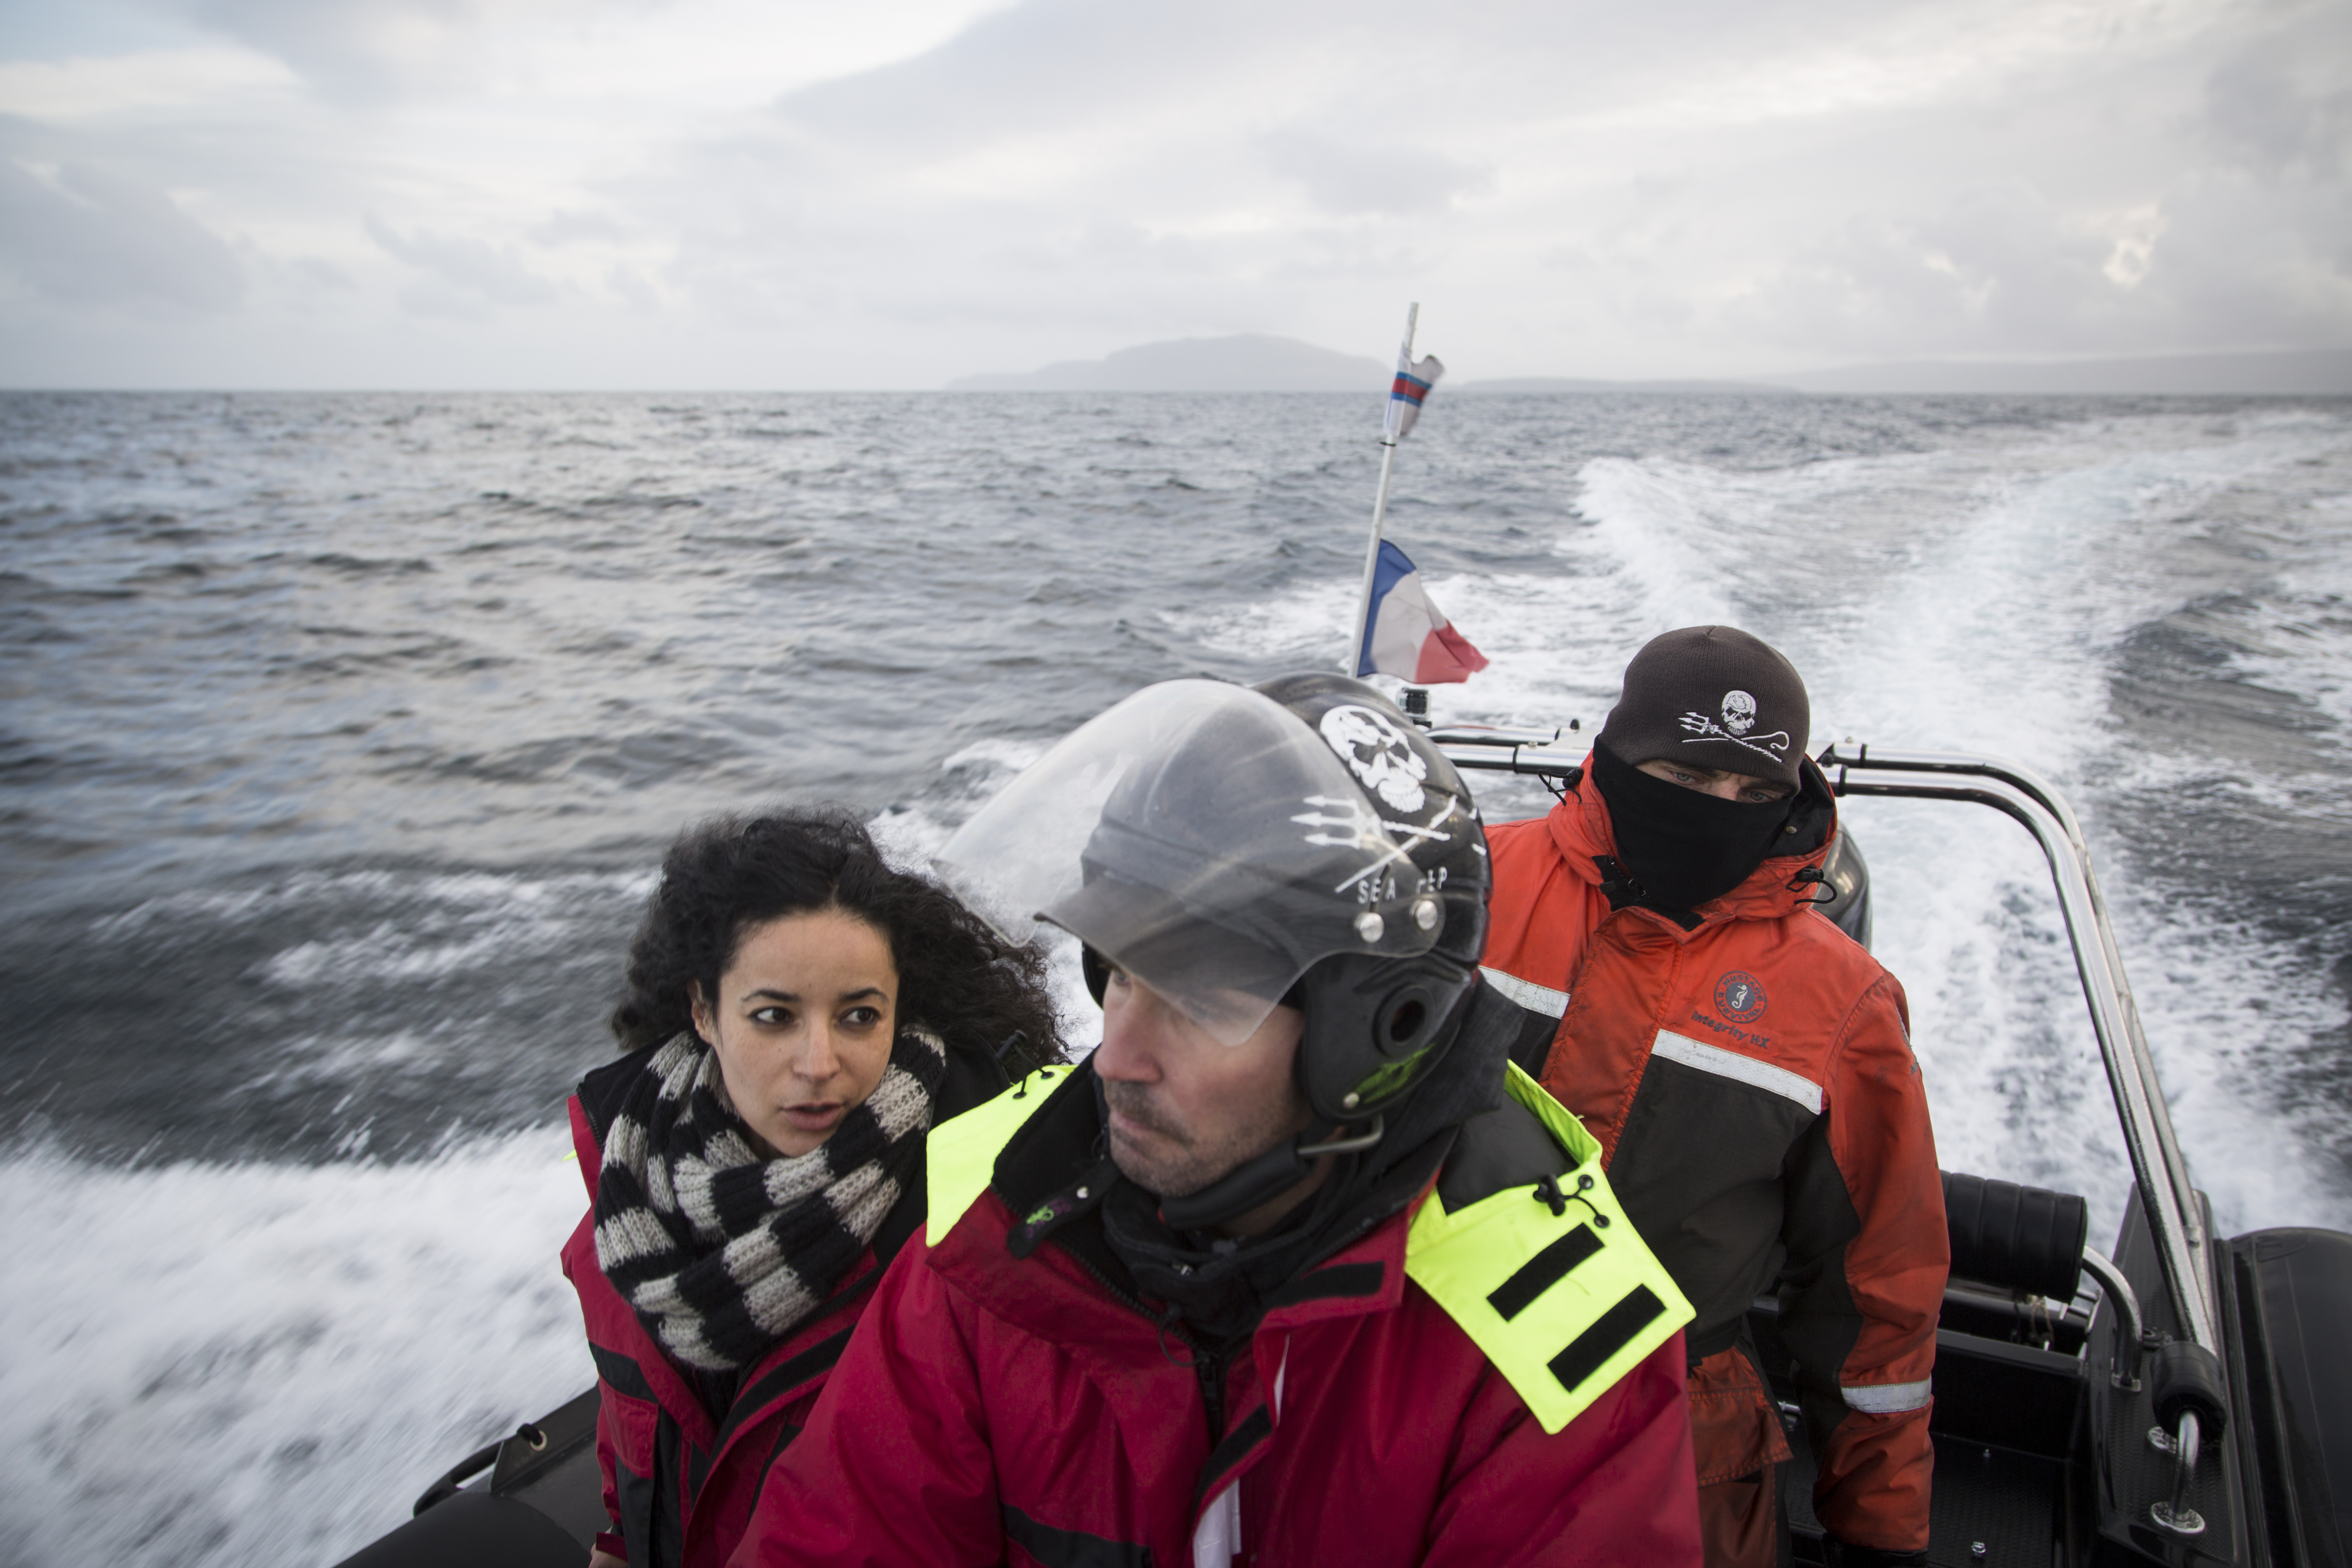 Members of the Sea Shepherd boat crew, including Lamya Essemlali (left), patrol the waters for whales surrounding the Faroe Islands on September 22, 2014. In 2014, hundreds of volunteers from Sea Shepherd descended on the Faroe Islands to interfere with the whale hunt, which they say is barbaric and unnecessary. Photo: Ed Ou Reportage: Getty Images